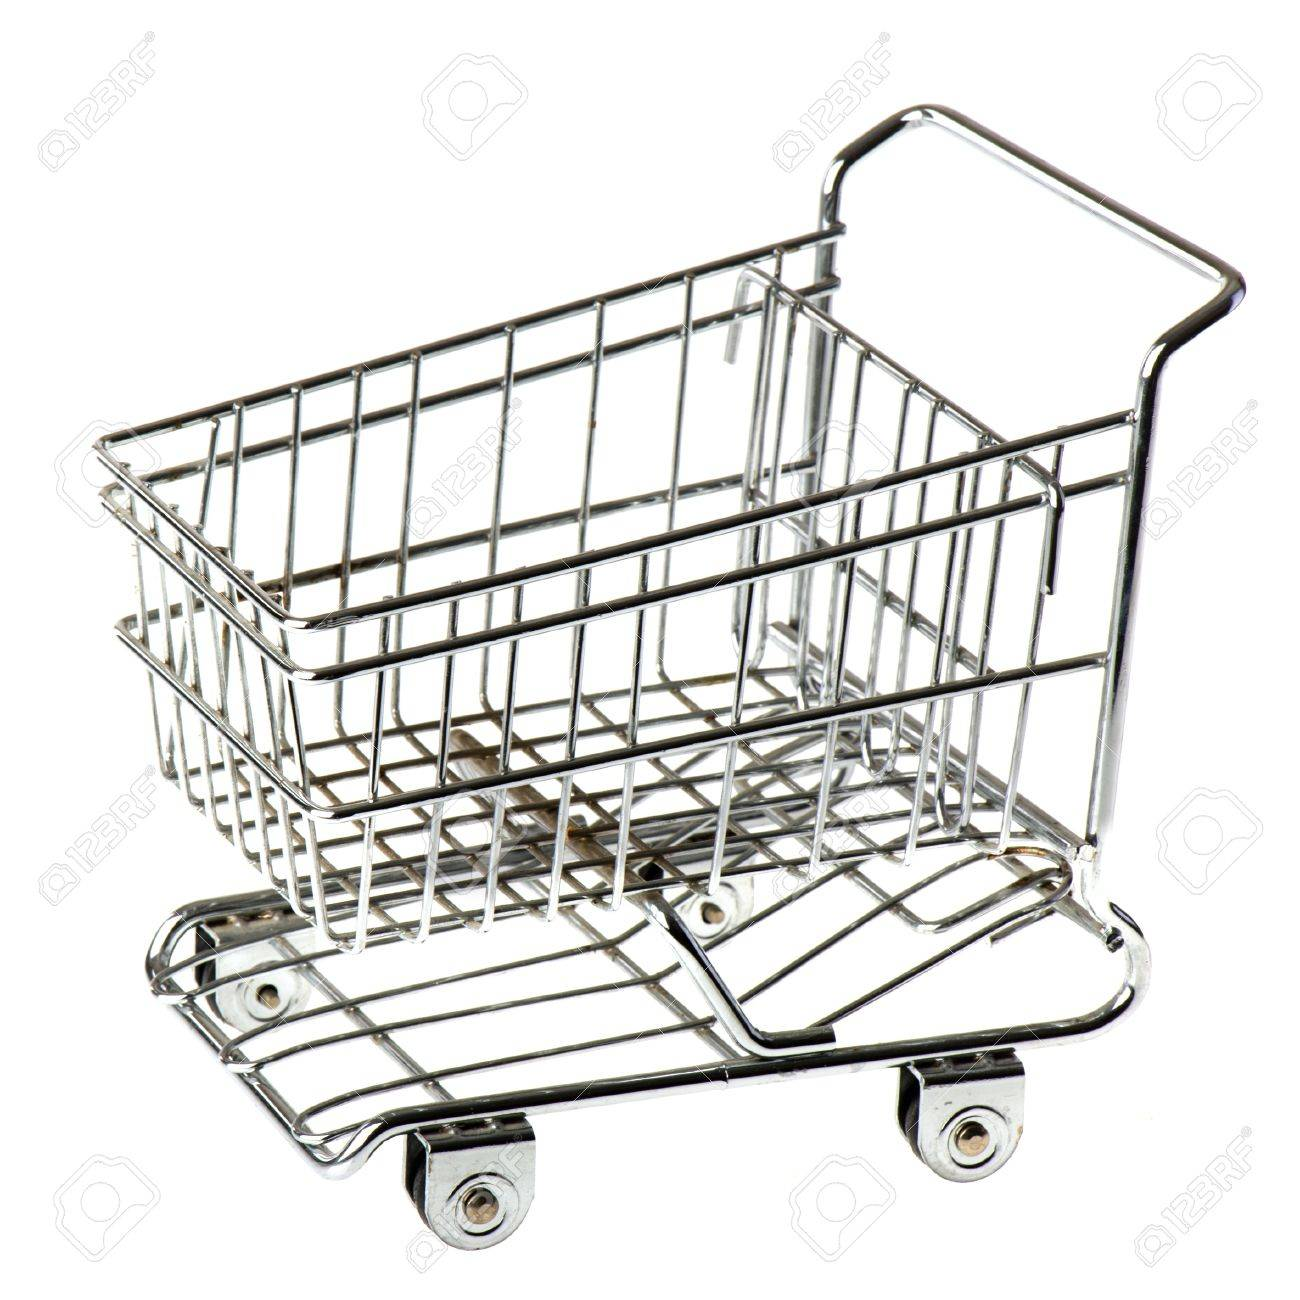 Empty metal shopping cart isolated over white background Stock Photo - 8489977